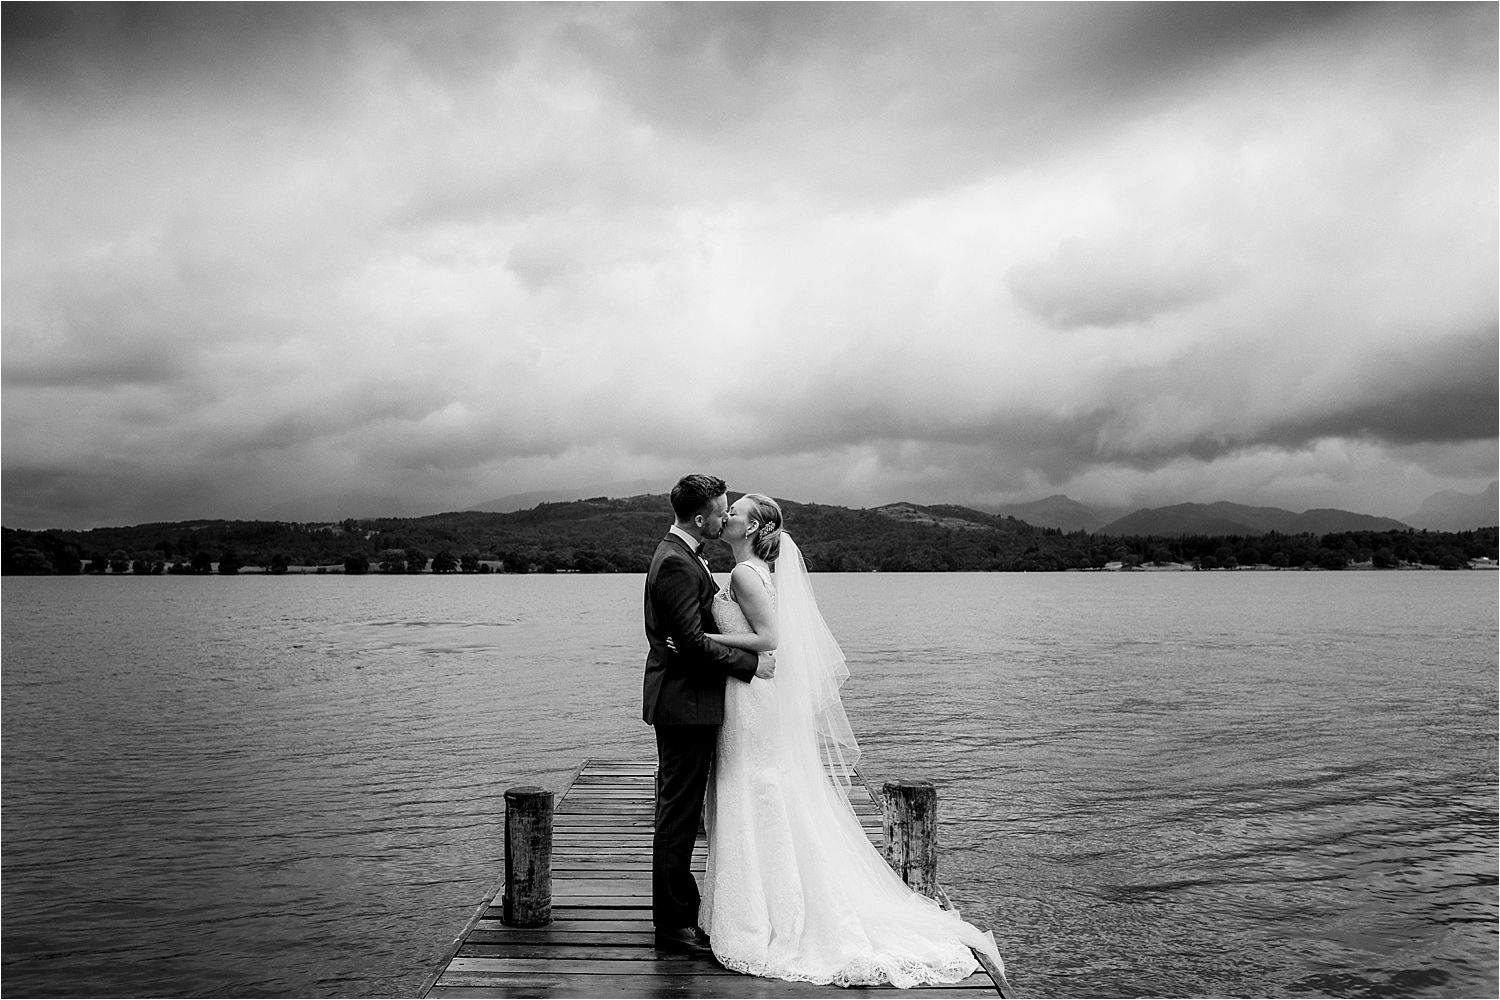 Kissing bride and groom on jetty at Low Wood Bay wedding venue, Lake Windermere